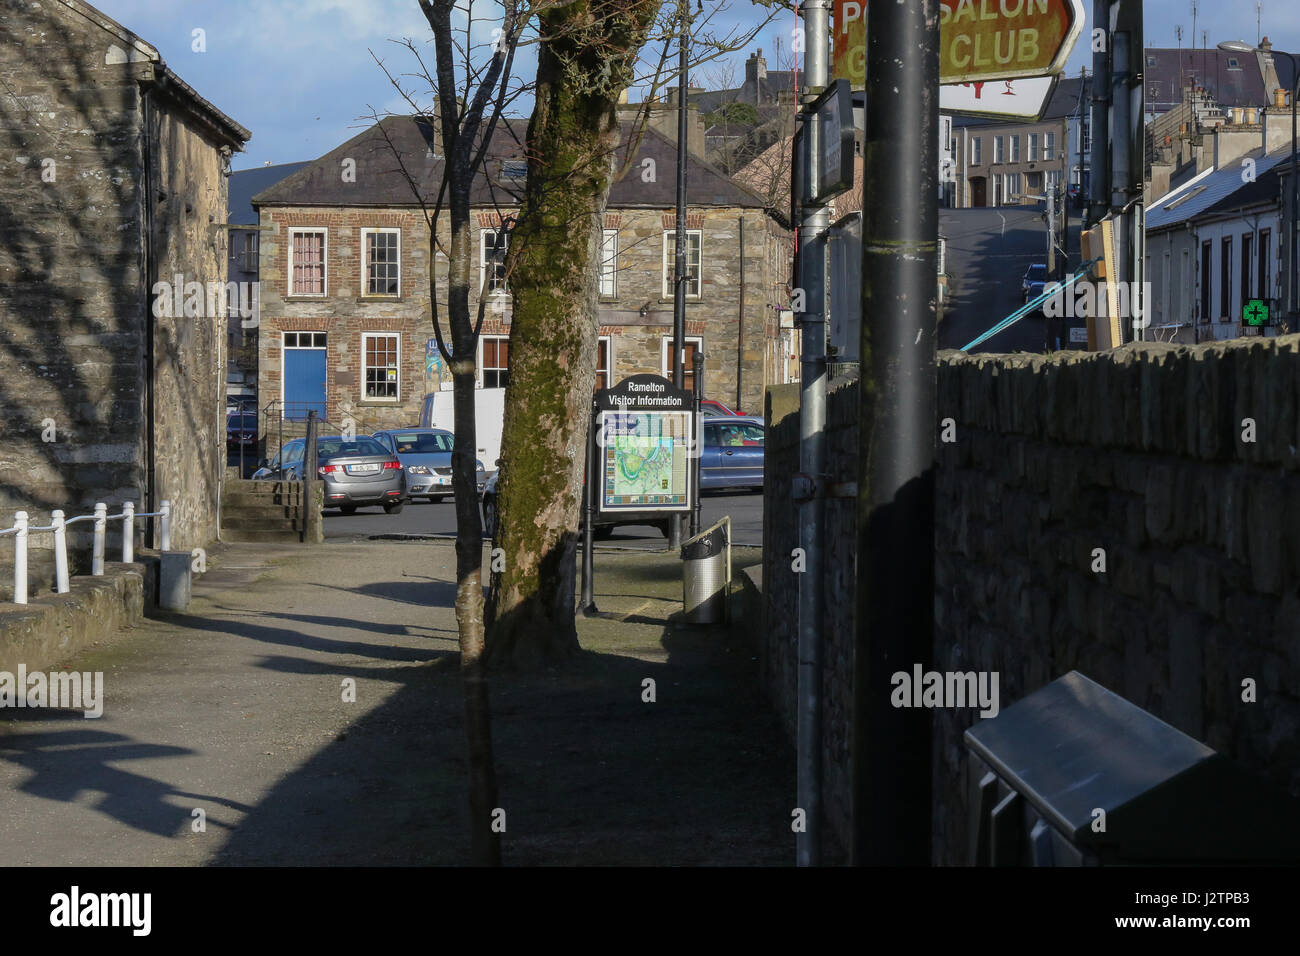 Visitor information sign in Ramelton, County Donegal, Ireland. - Stock Image